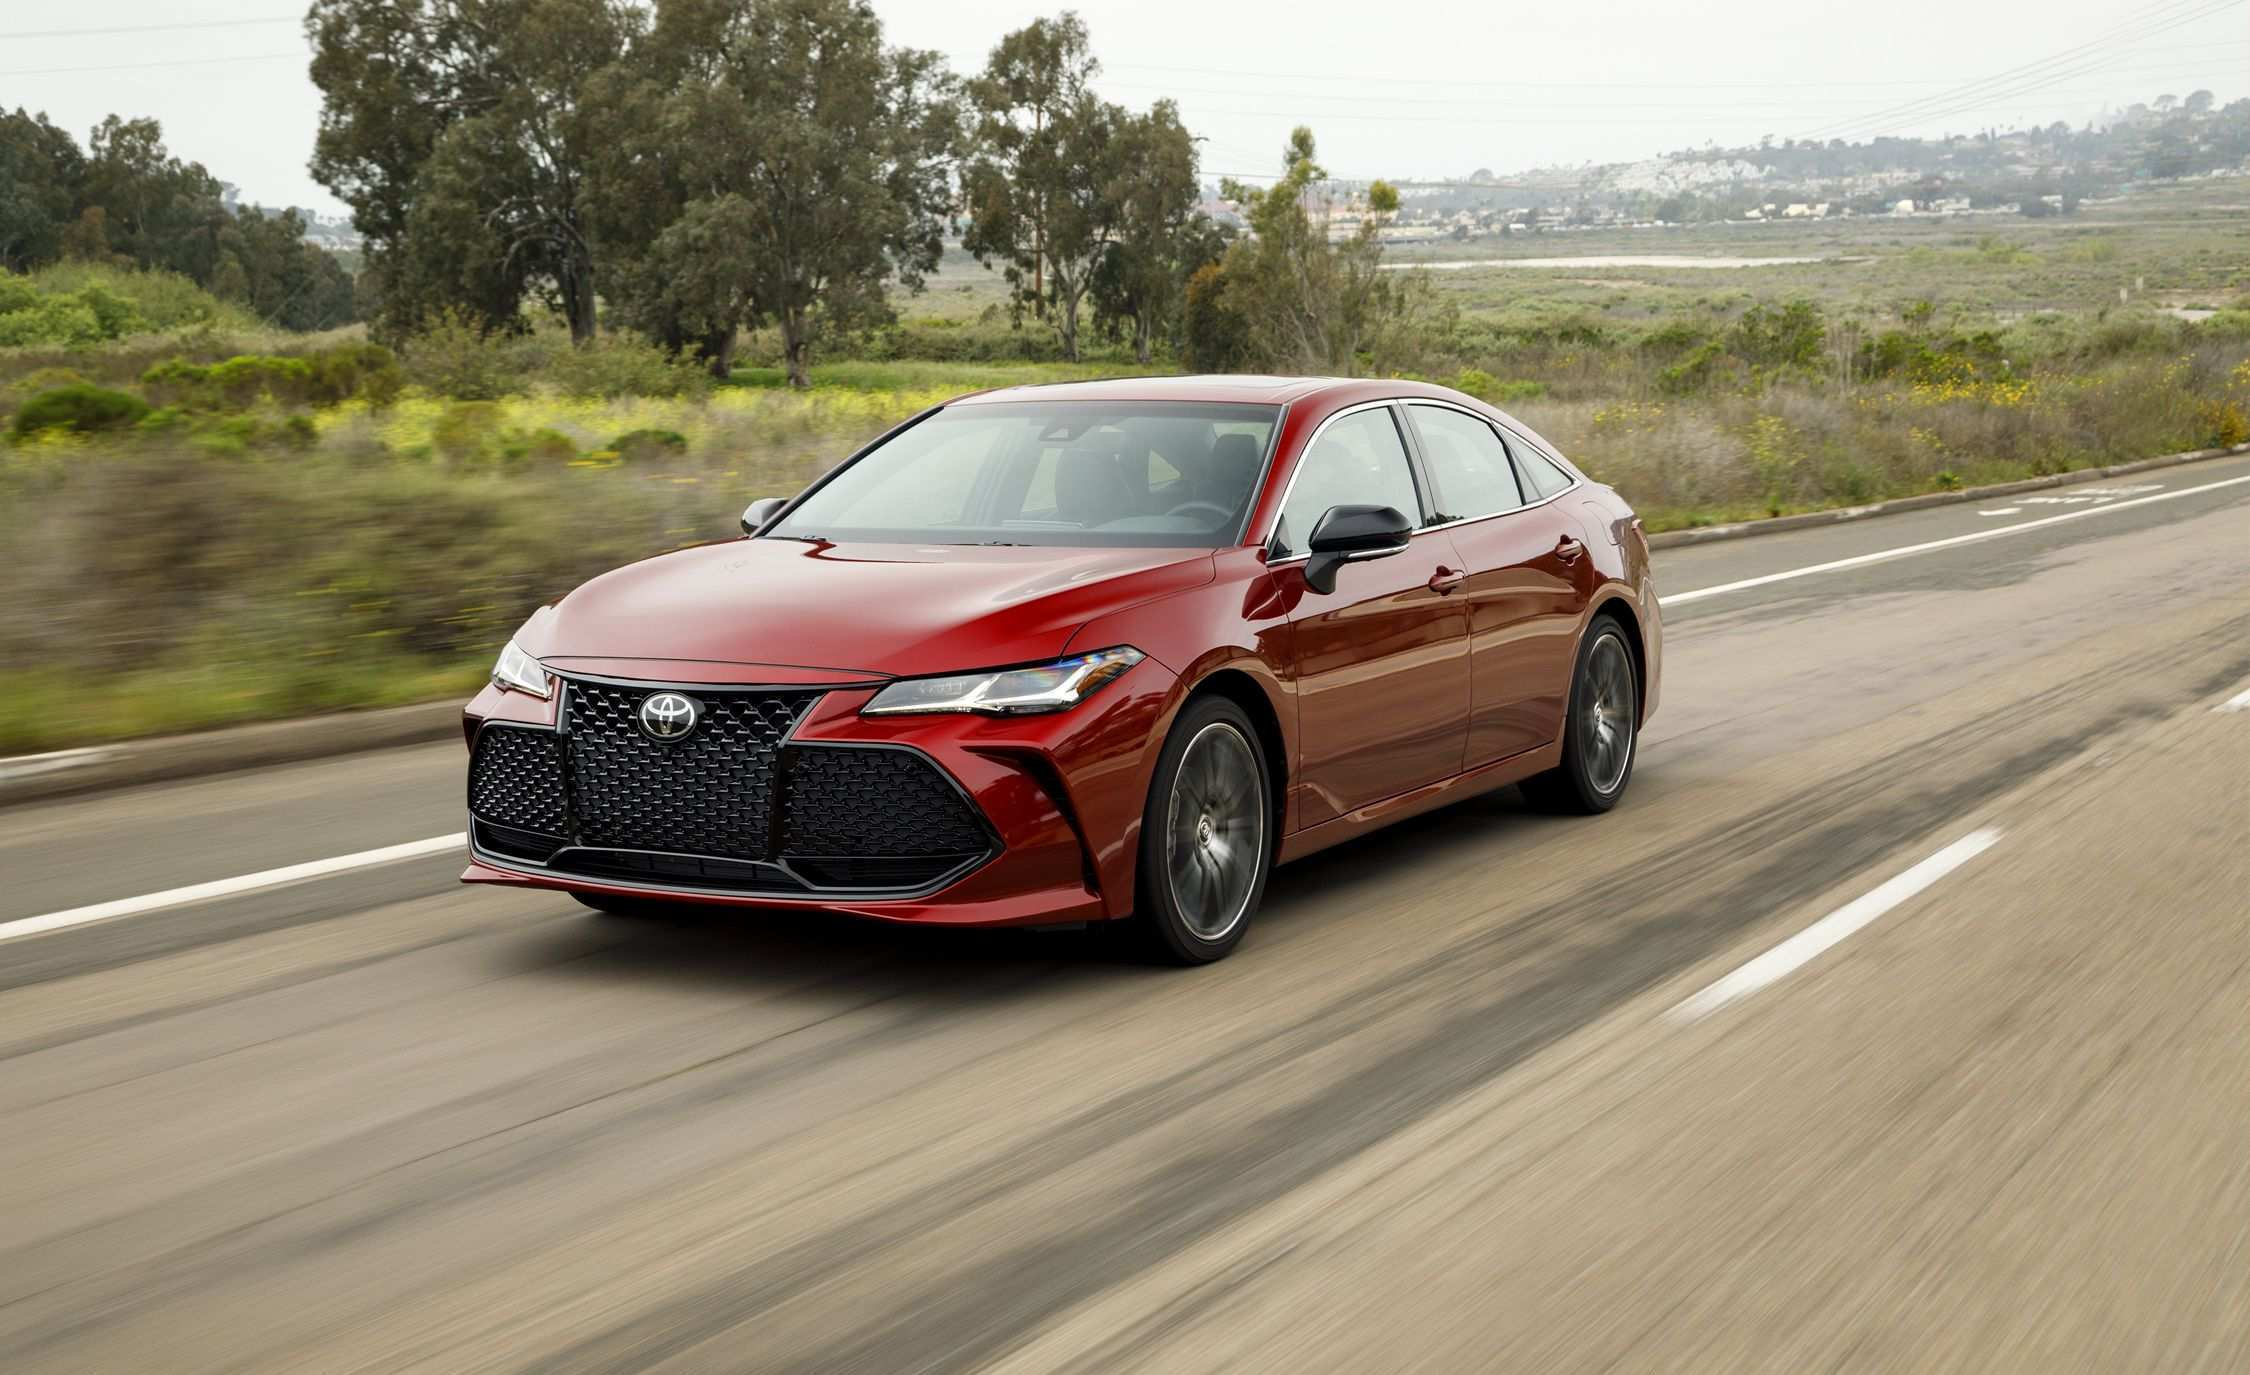 67 Gallery of New Toyota Avalon 2019 Review Exterior And Interior Review Concept for New Toyota Avalon 2019 Review Exterior And Interior Review